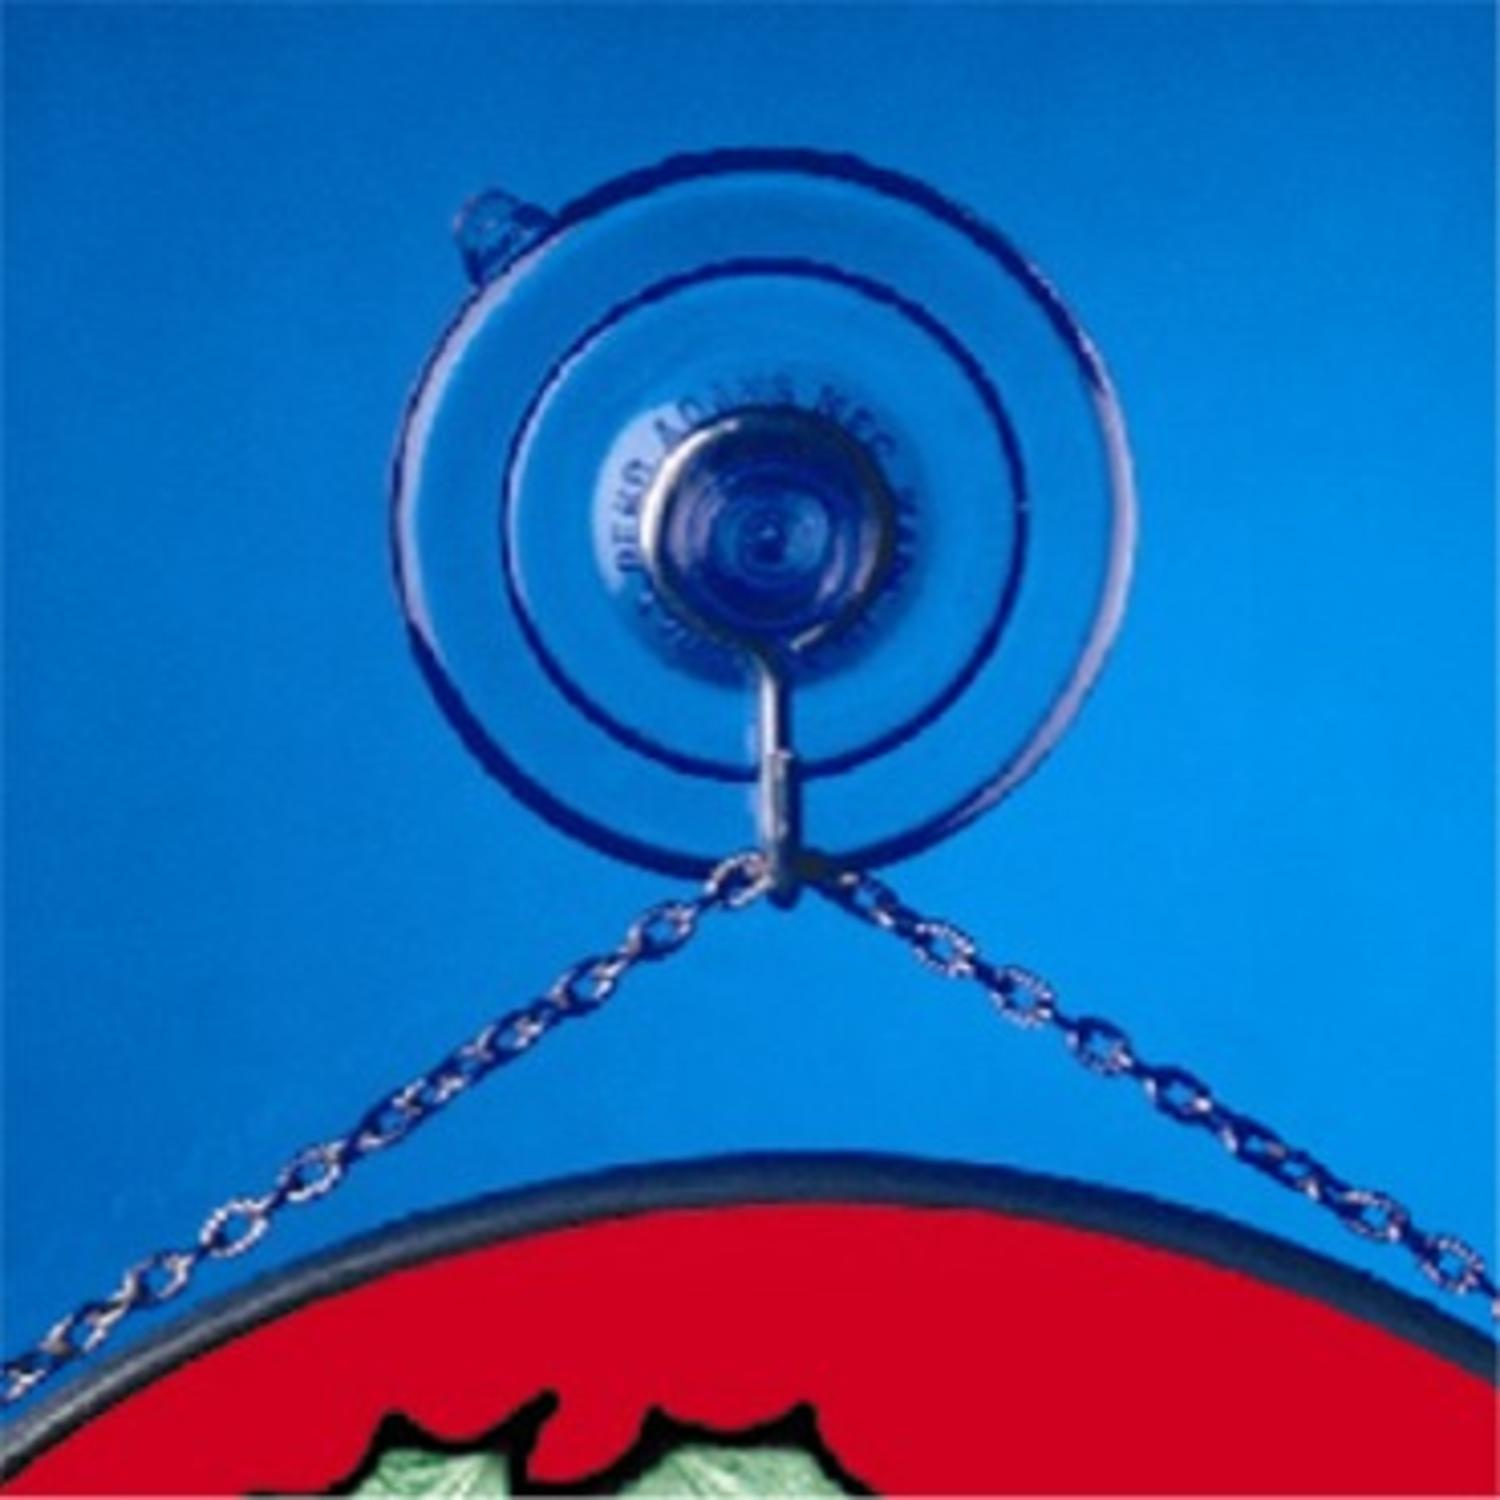 Pack of 3 Suction Cups for Hanging christmas Decorations - Medium